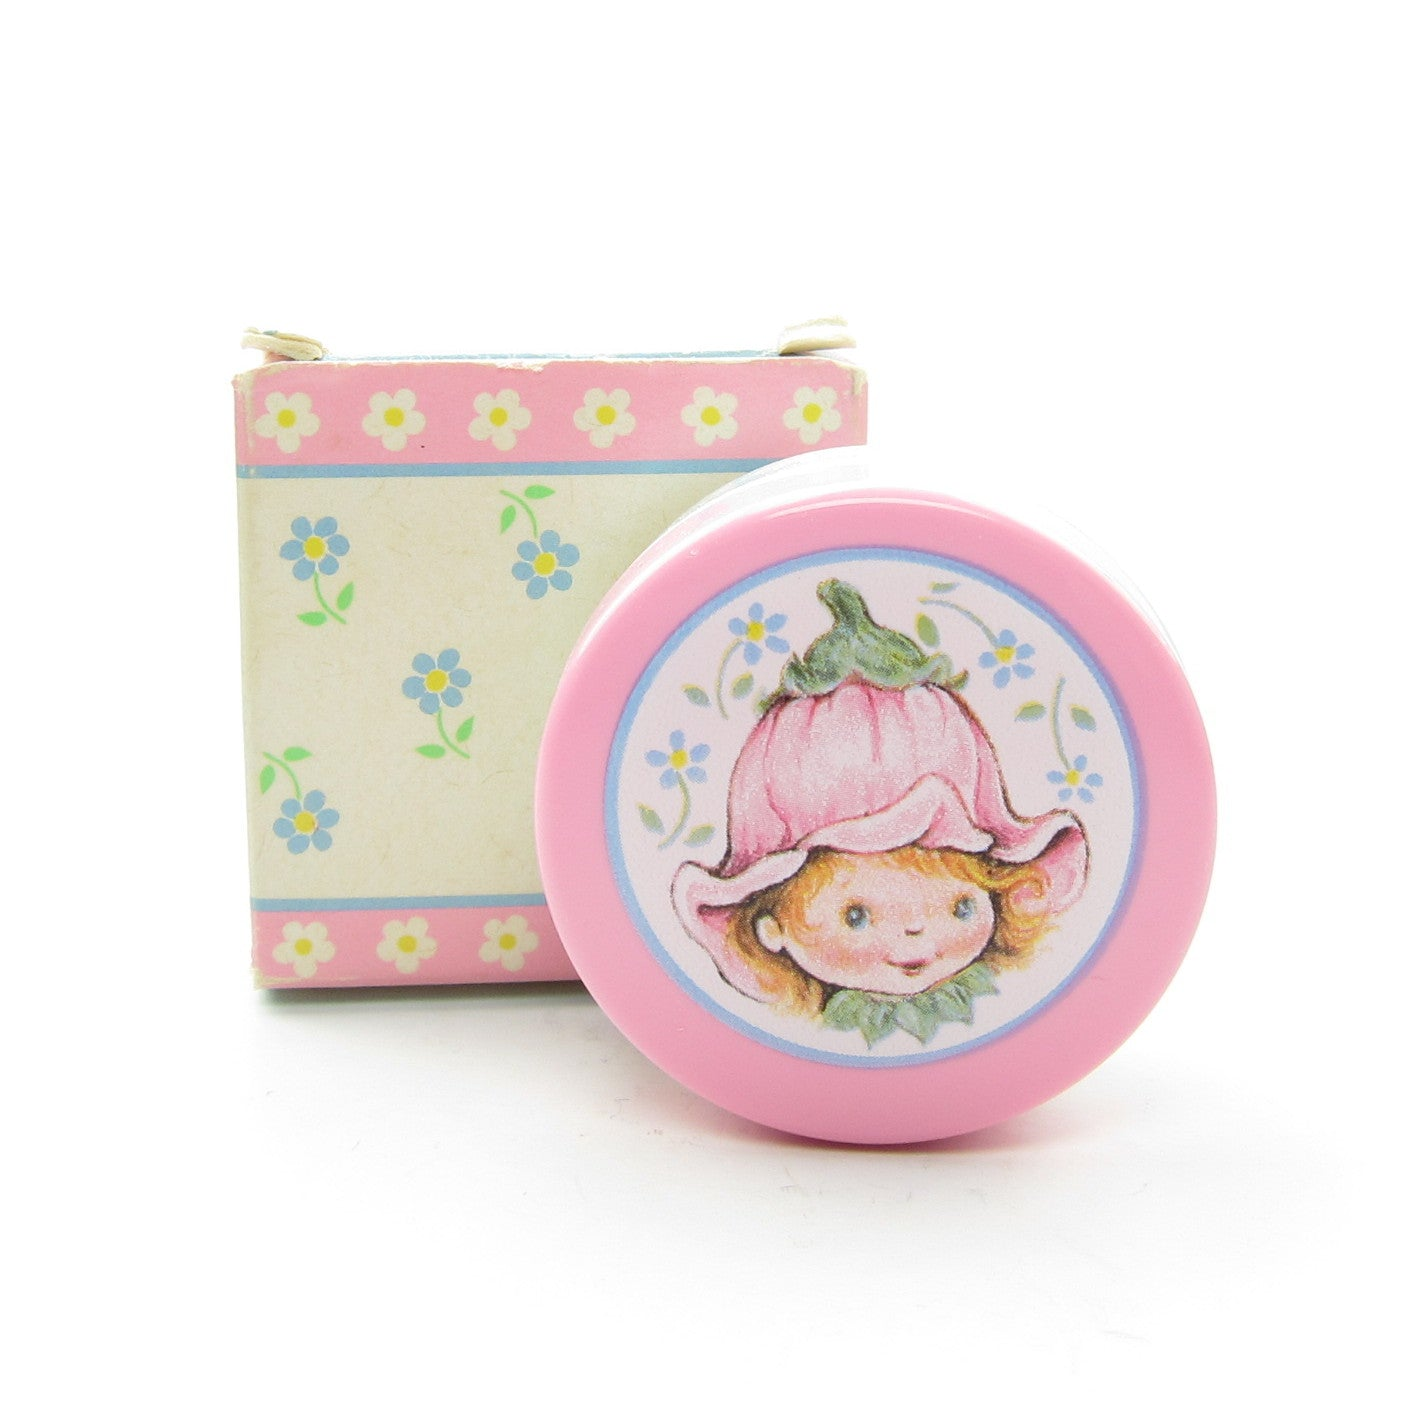 Avon Little Blossom Cheeky Rose Blush with box